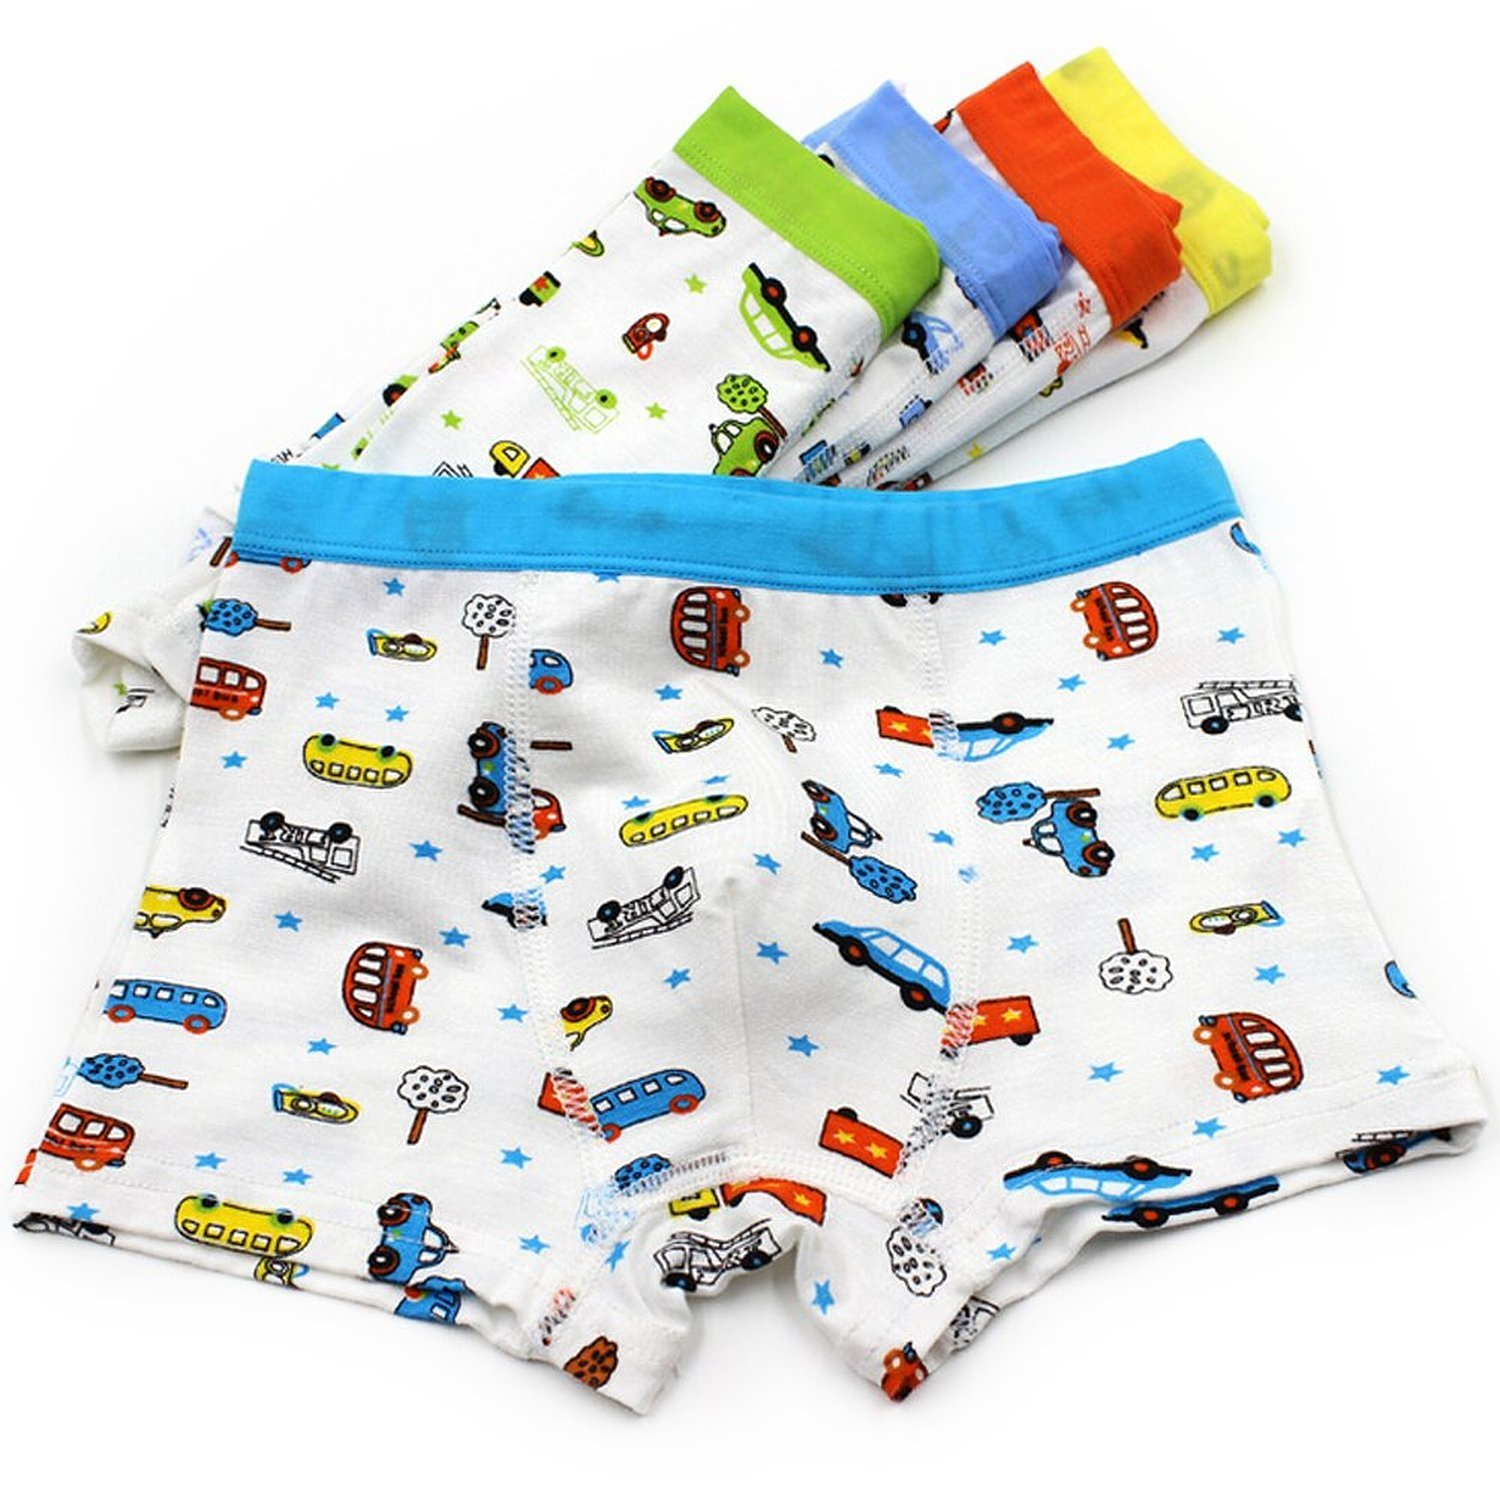 Bala Bala Boy's Boxer Brief Multicolor Underwear (Pack Of 5) (XL/Car Underwear, (Pack Of 5)/Car Underwear) by Bala Bala (Image #2)